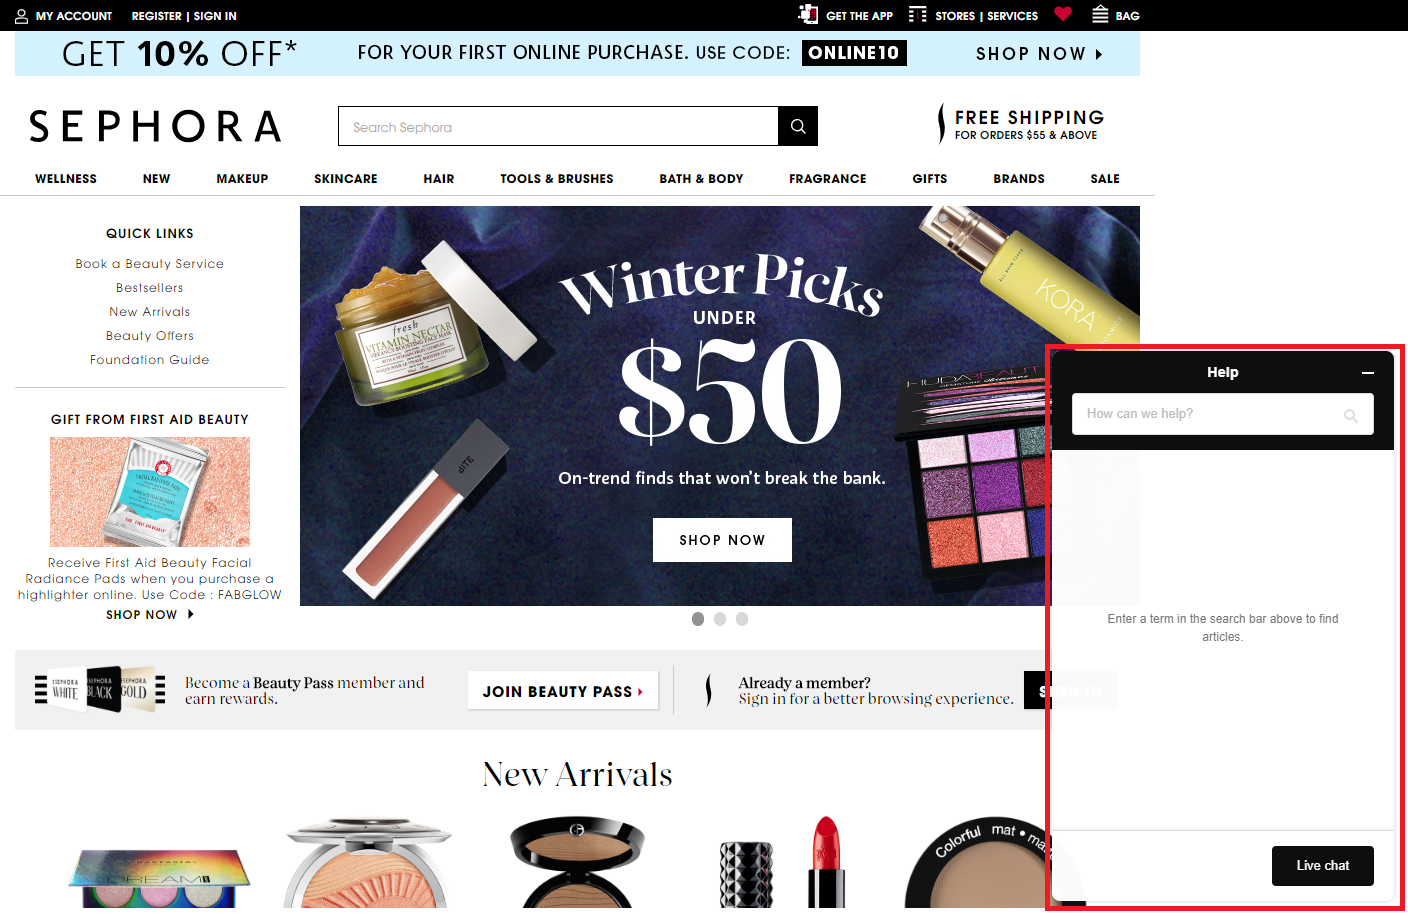 Sephora chatbot pop up